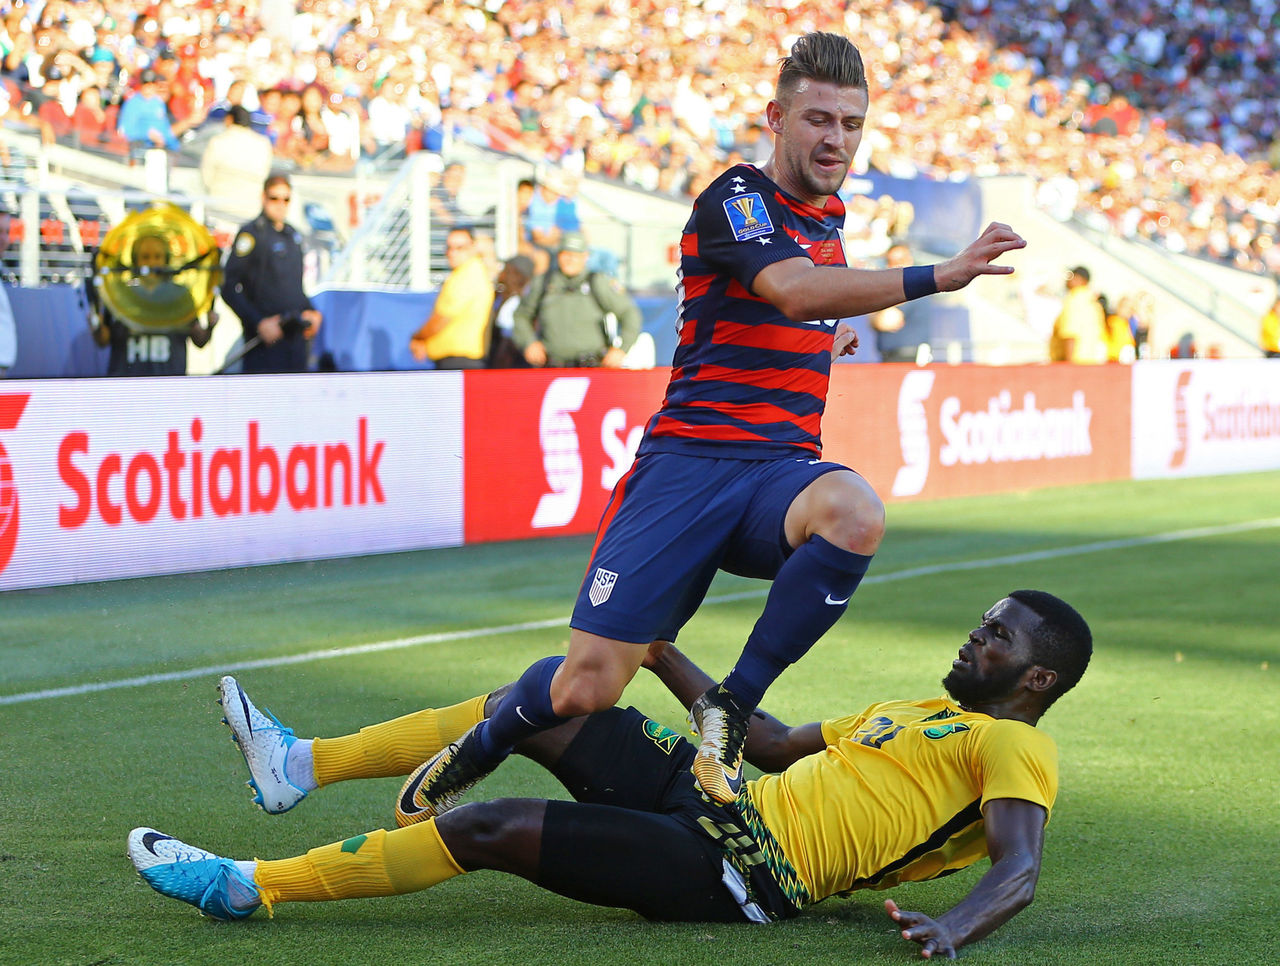 Cropped 2017 07 27t202247z 1348259178 nocid rtrmadp 3 soccer 2017 concacaf gold cup usa at jamaica